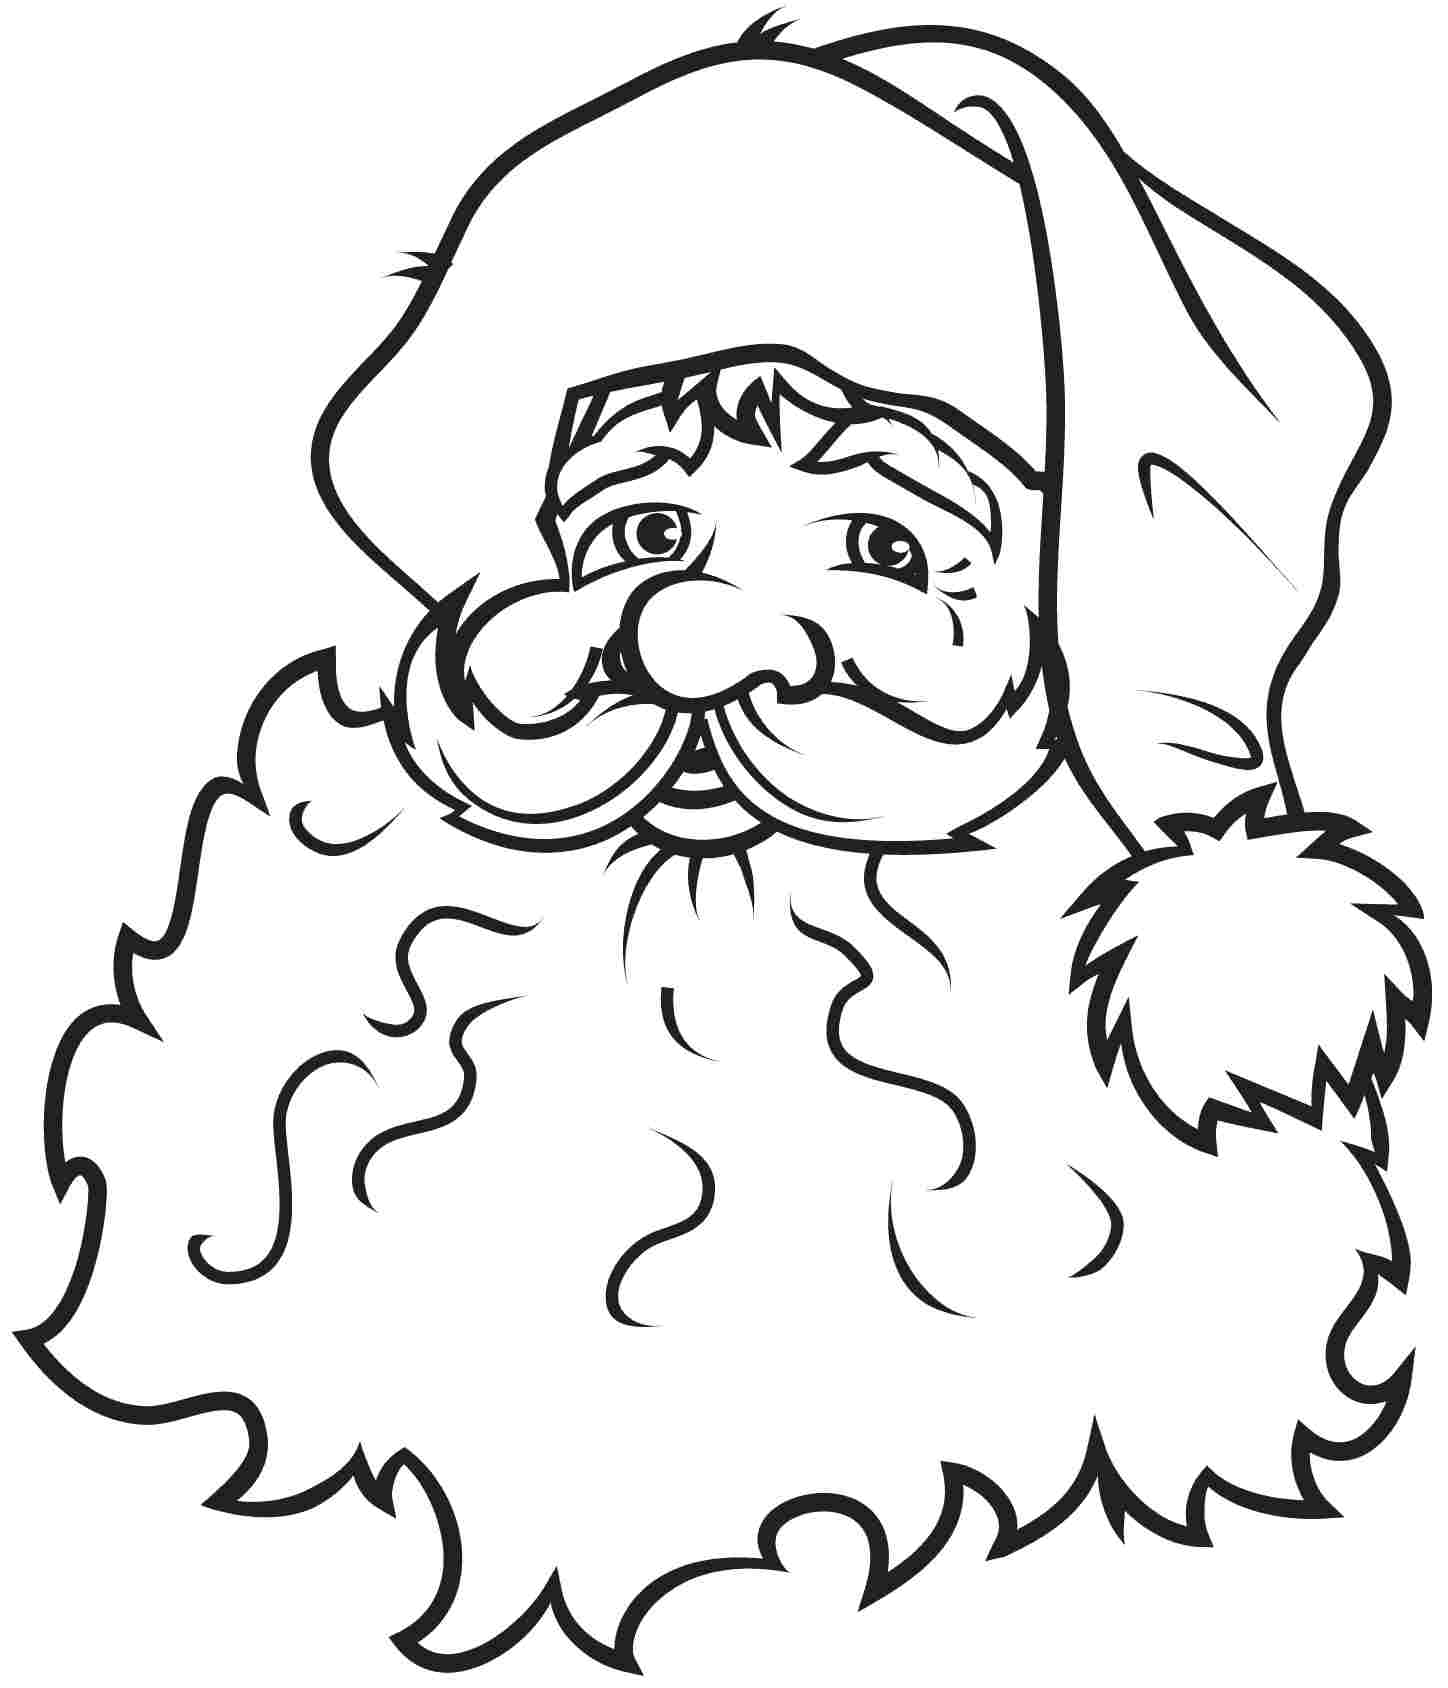 Free Santa Claus Outline, Download Free Clip Art, Free